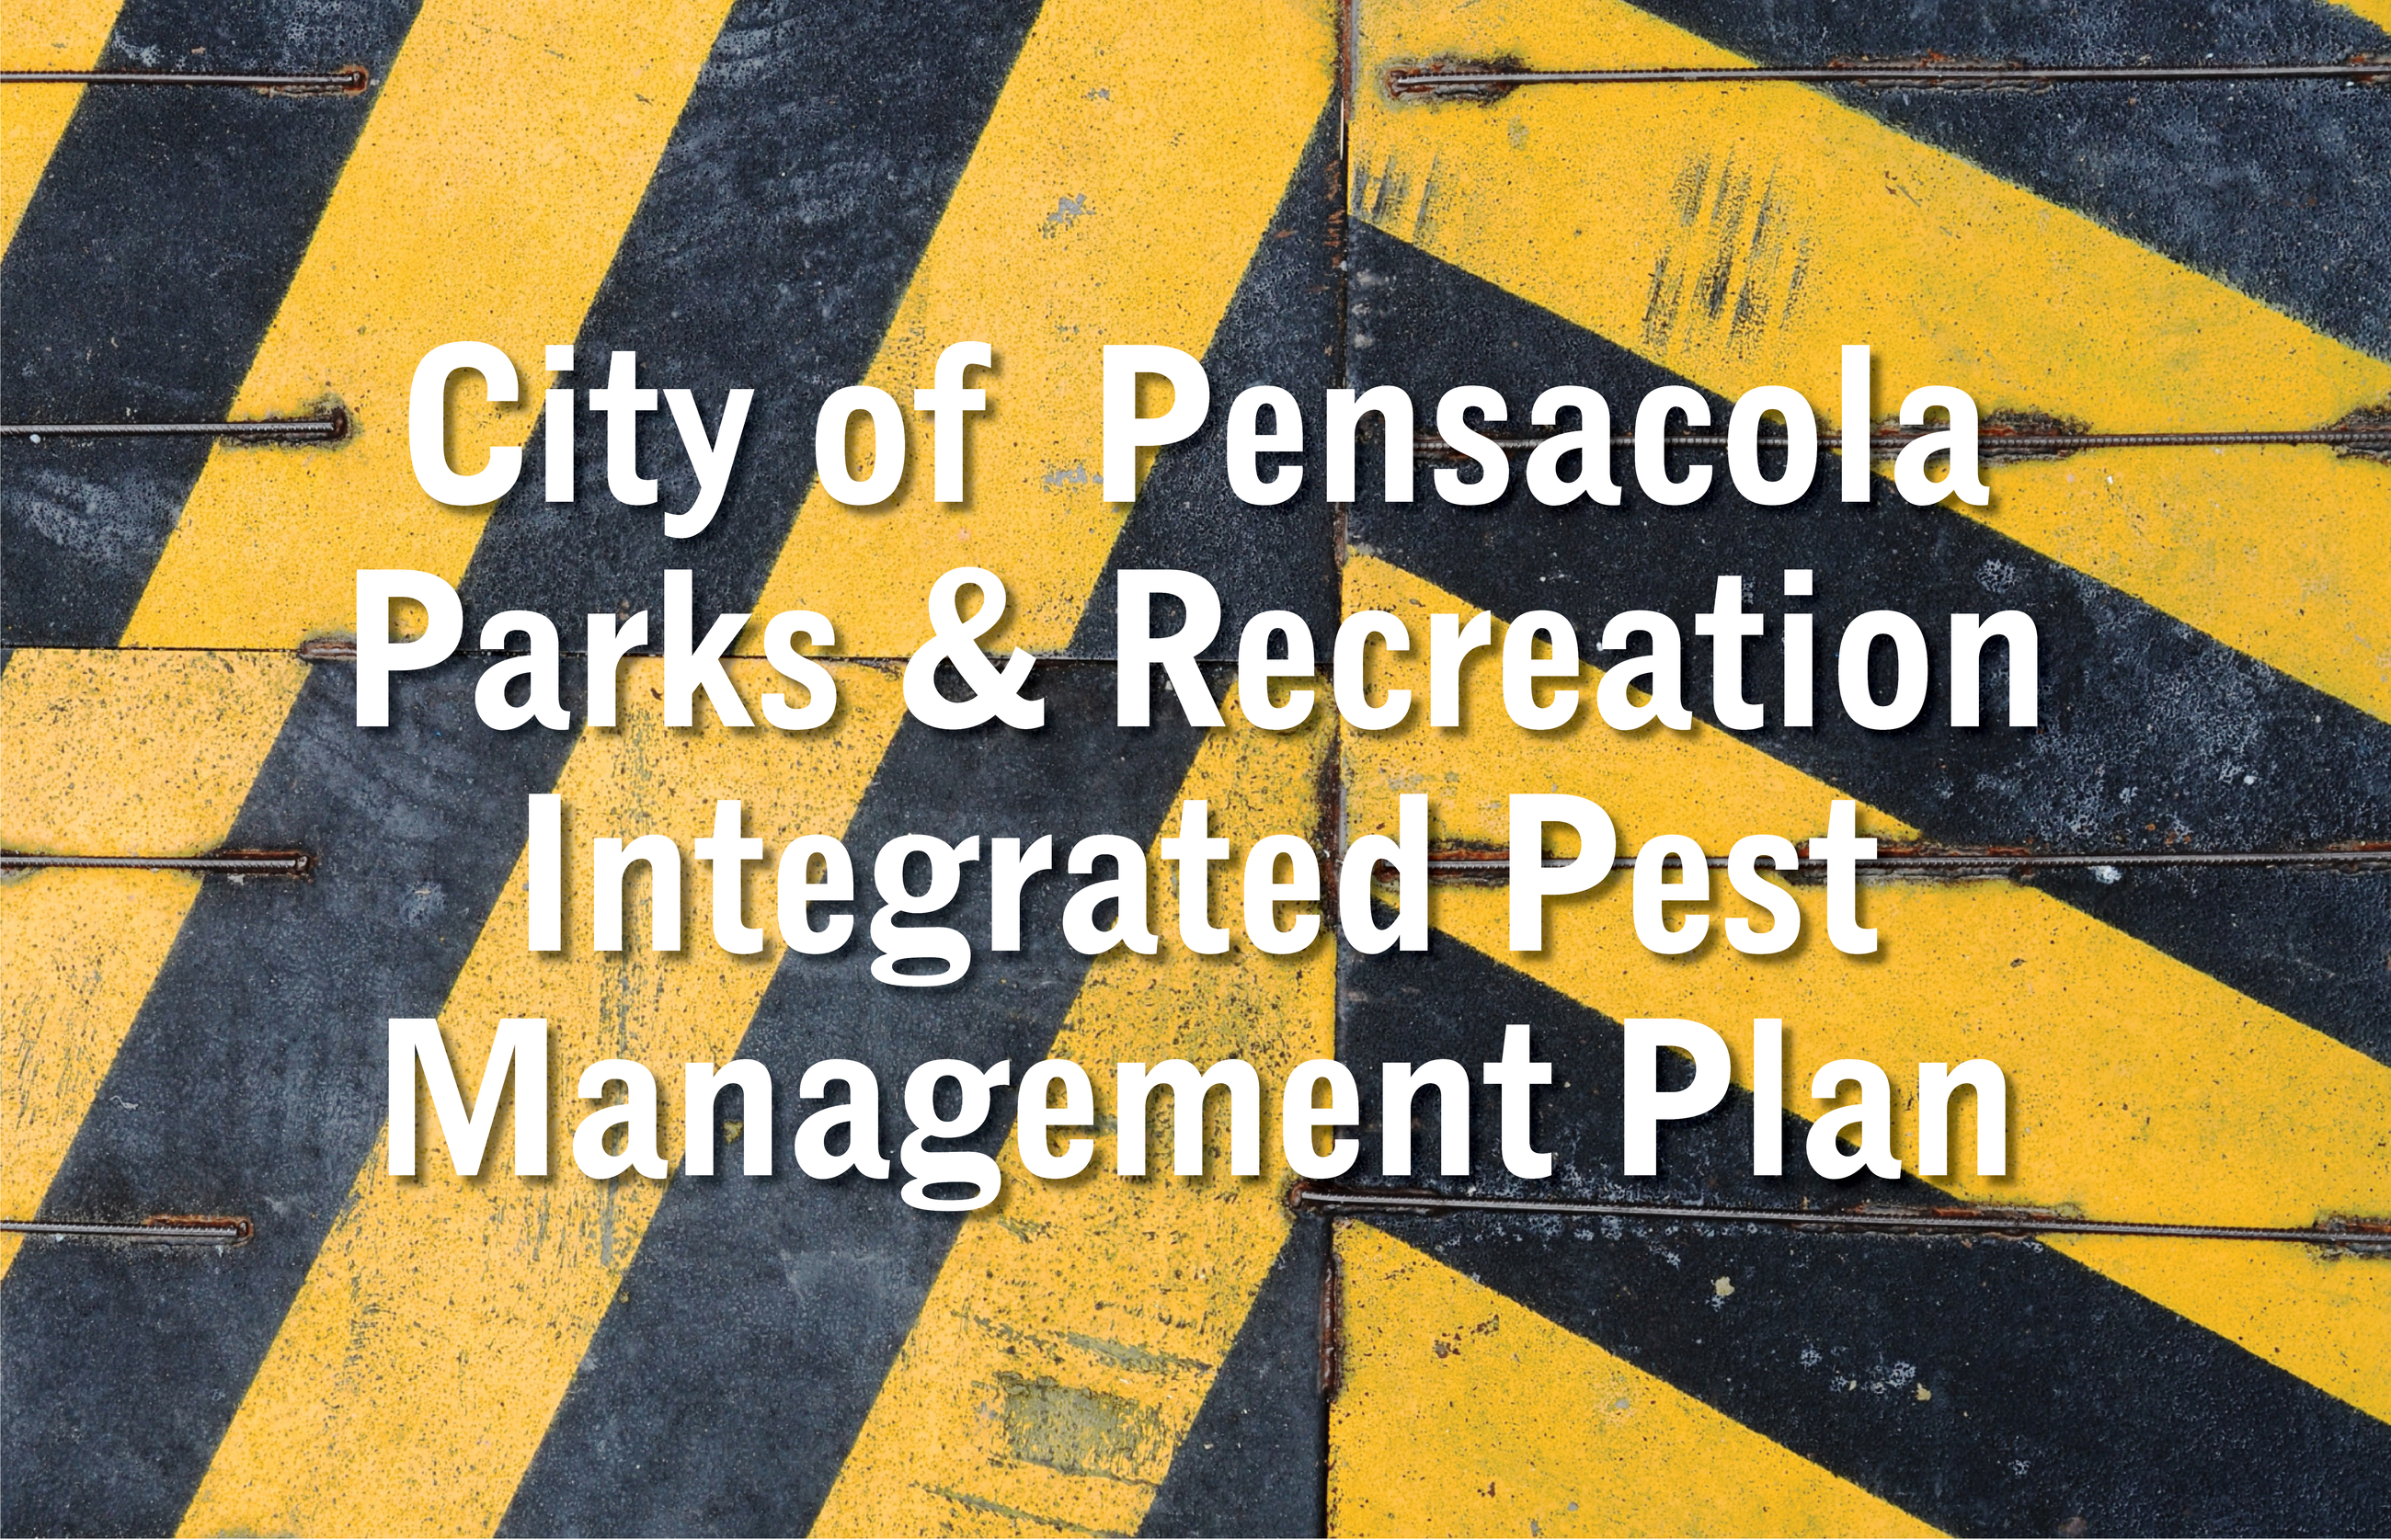 City of Pensacola Parks & Recreation IPM Plan